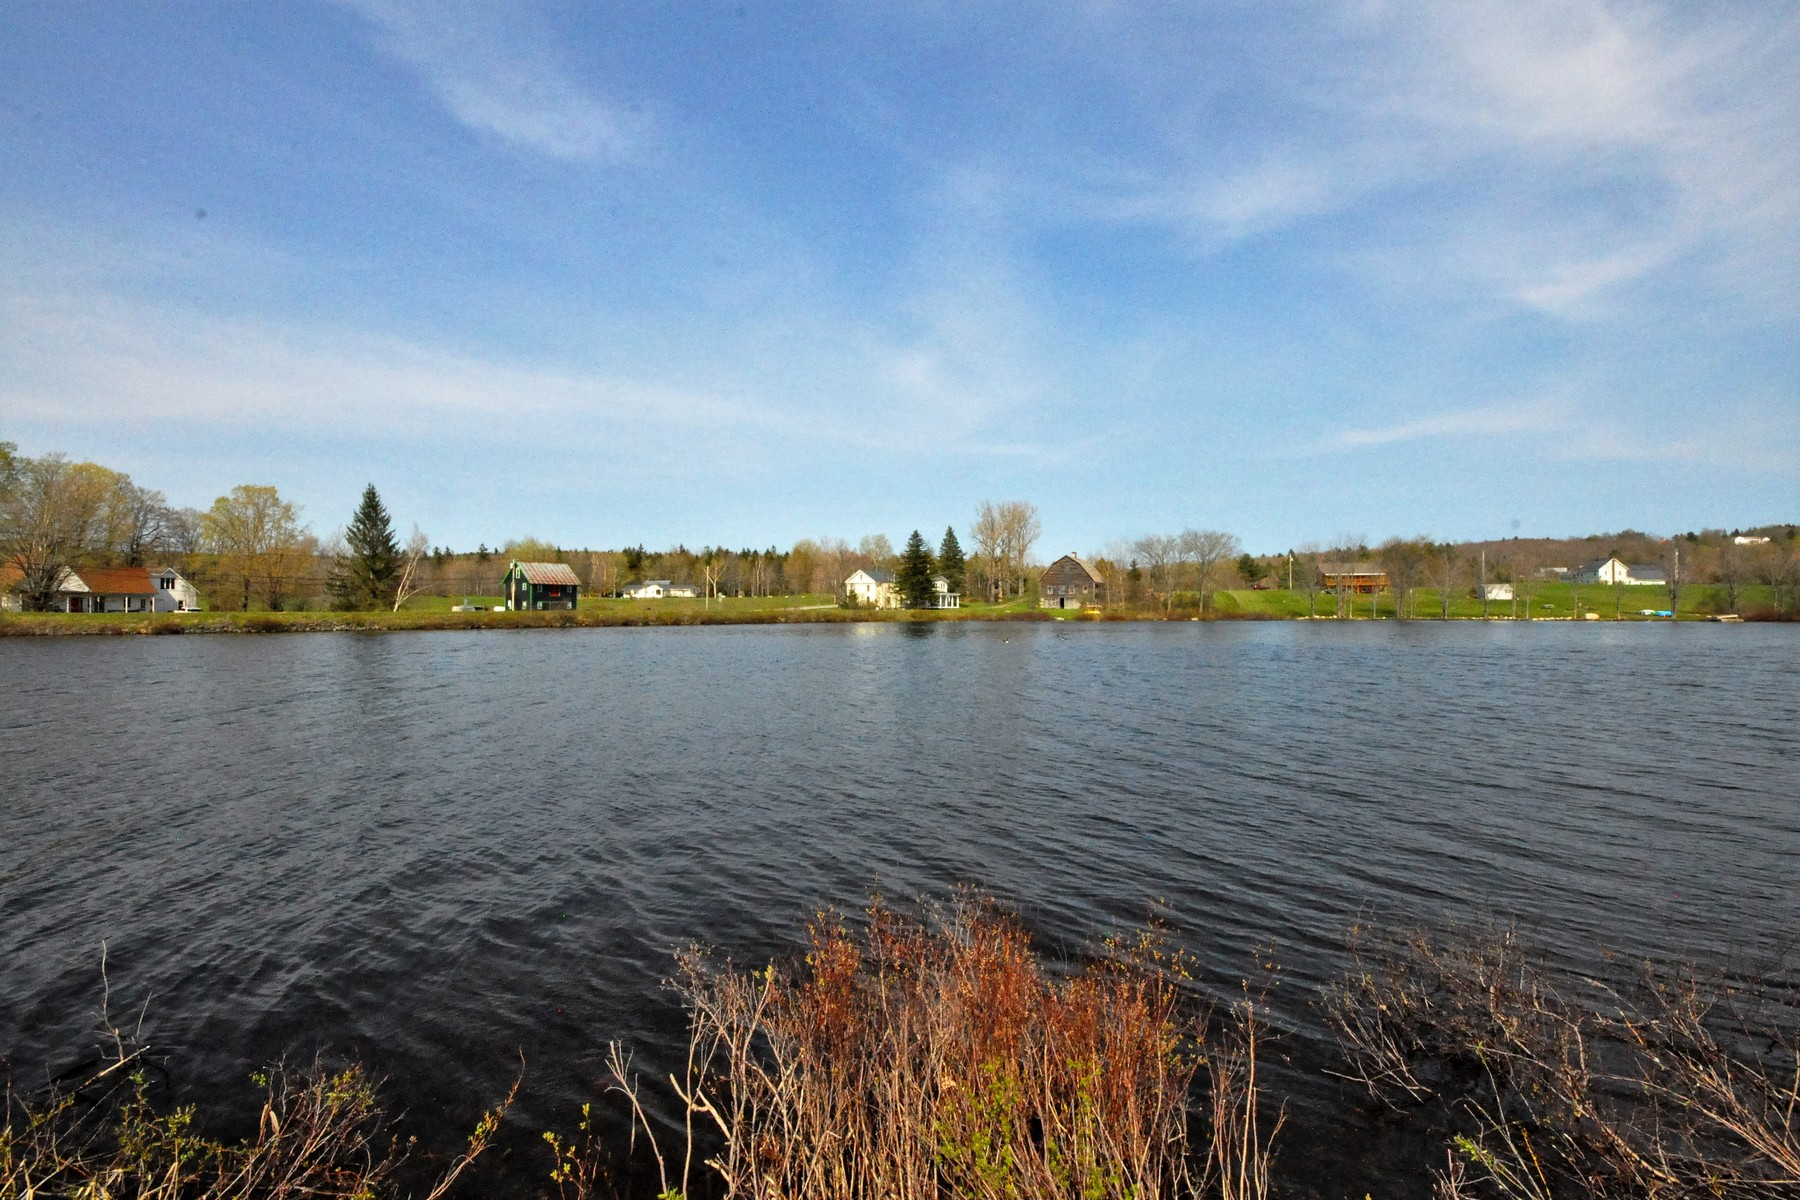 Land for Sale at Waterfront Lot on Lake Sadawga Lot 1 Tyanoga Dr Whitingham, Vermont 05361 United States